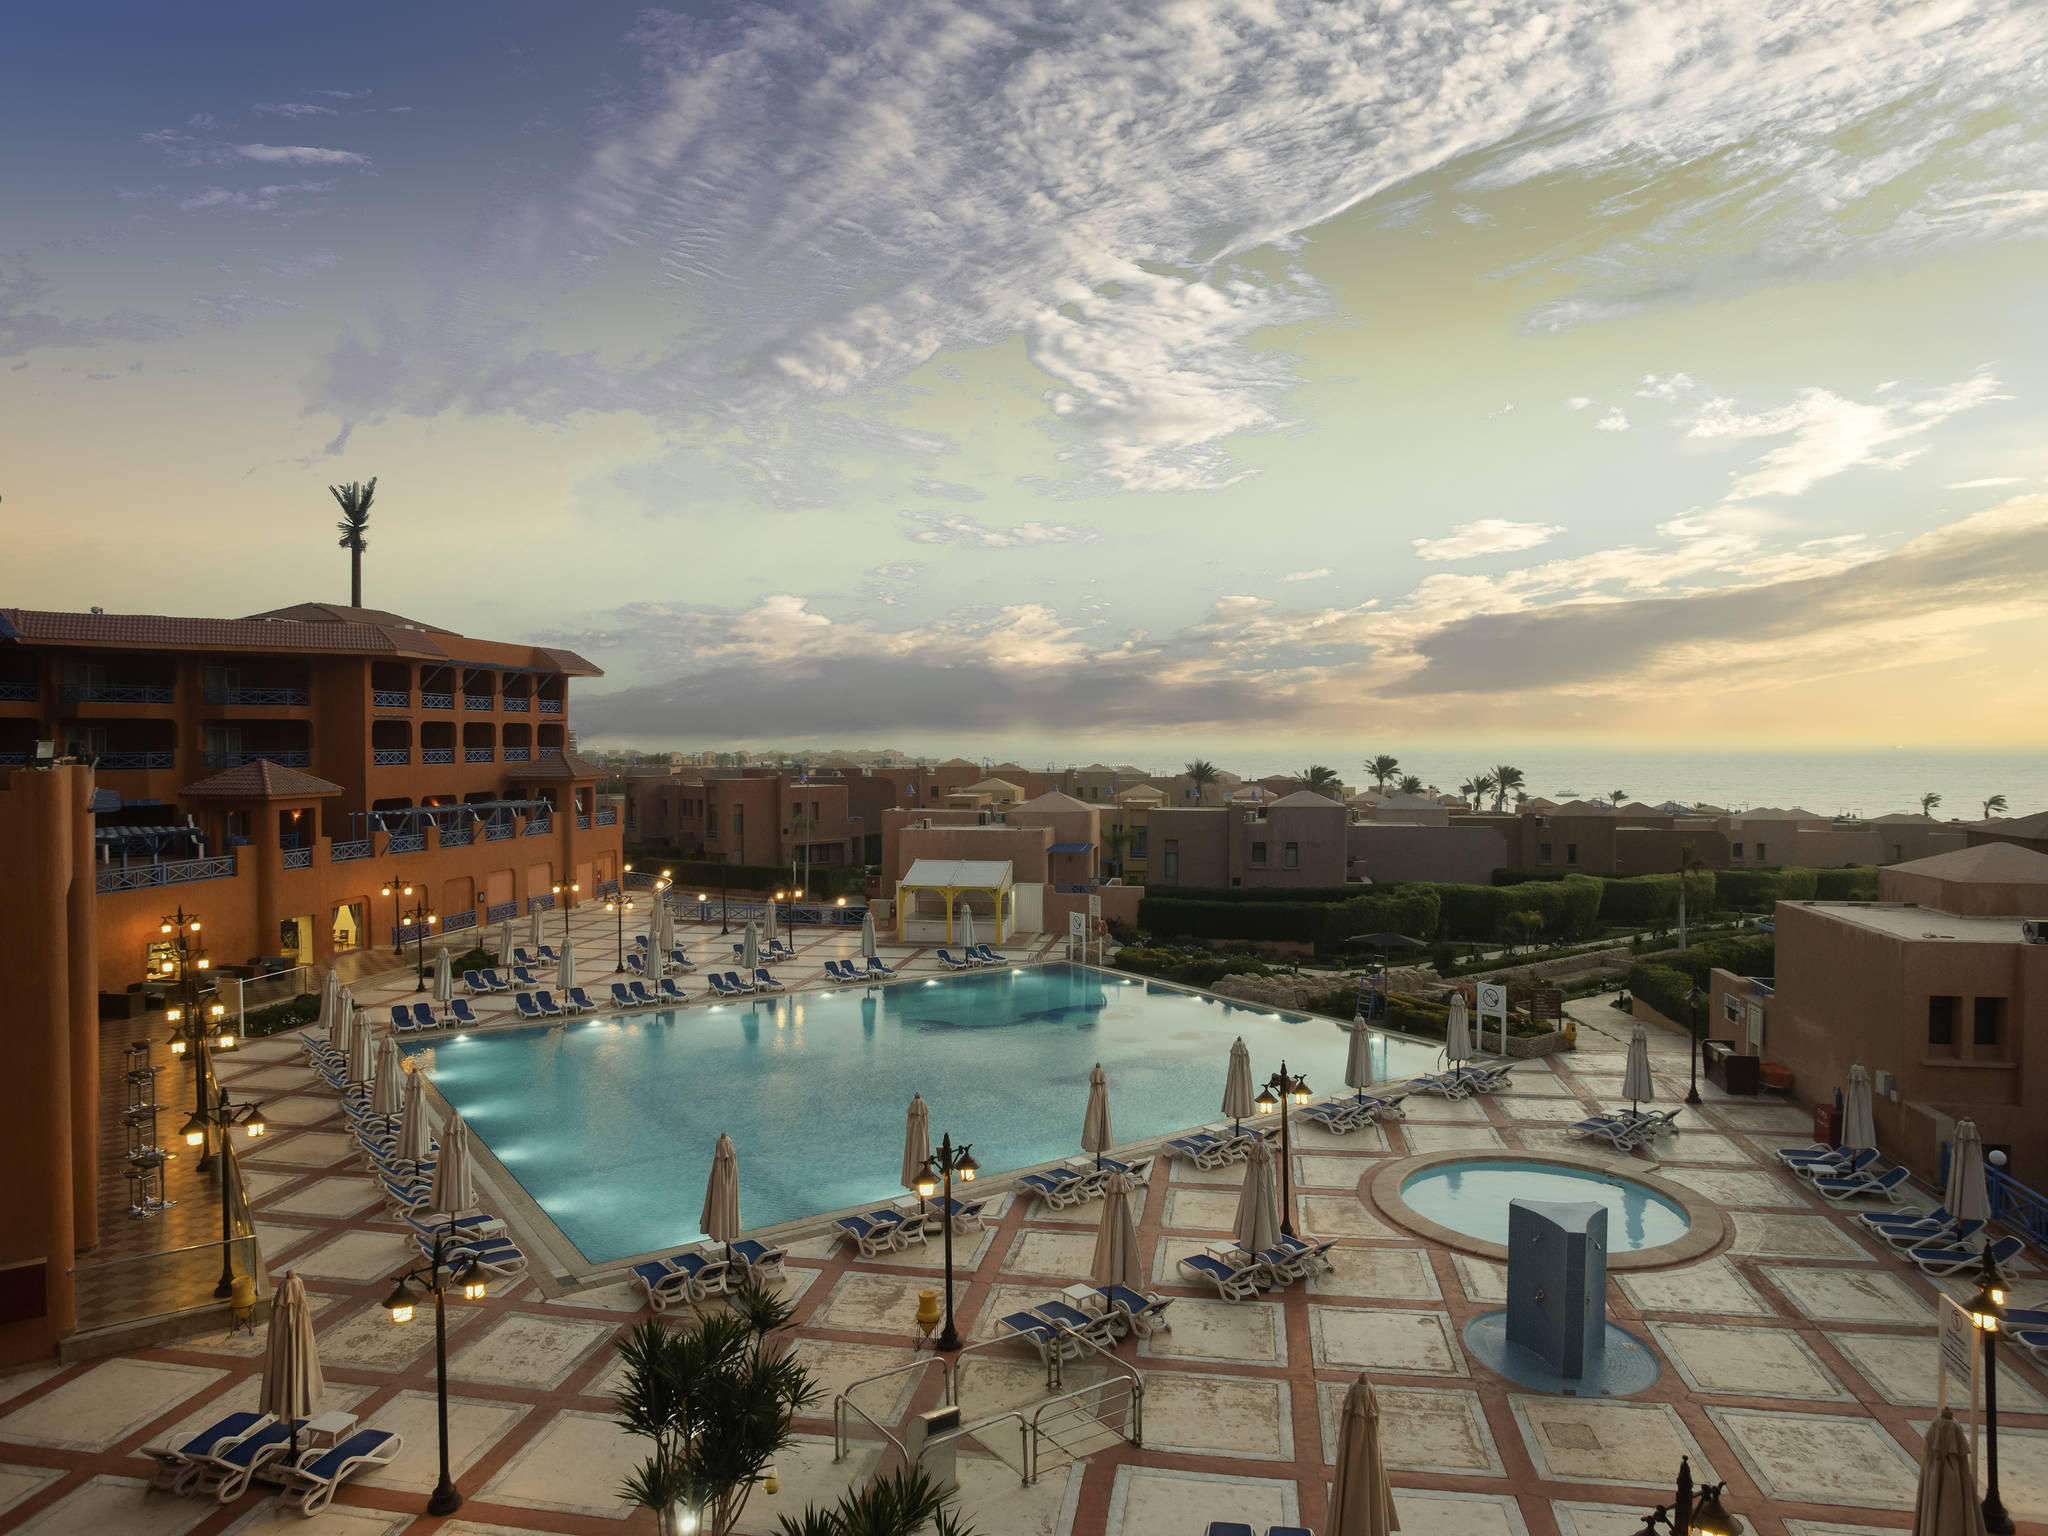 Hotell – Cancun Sokhna - Managed by AccorHotels